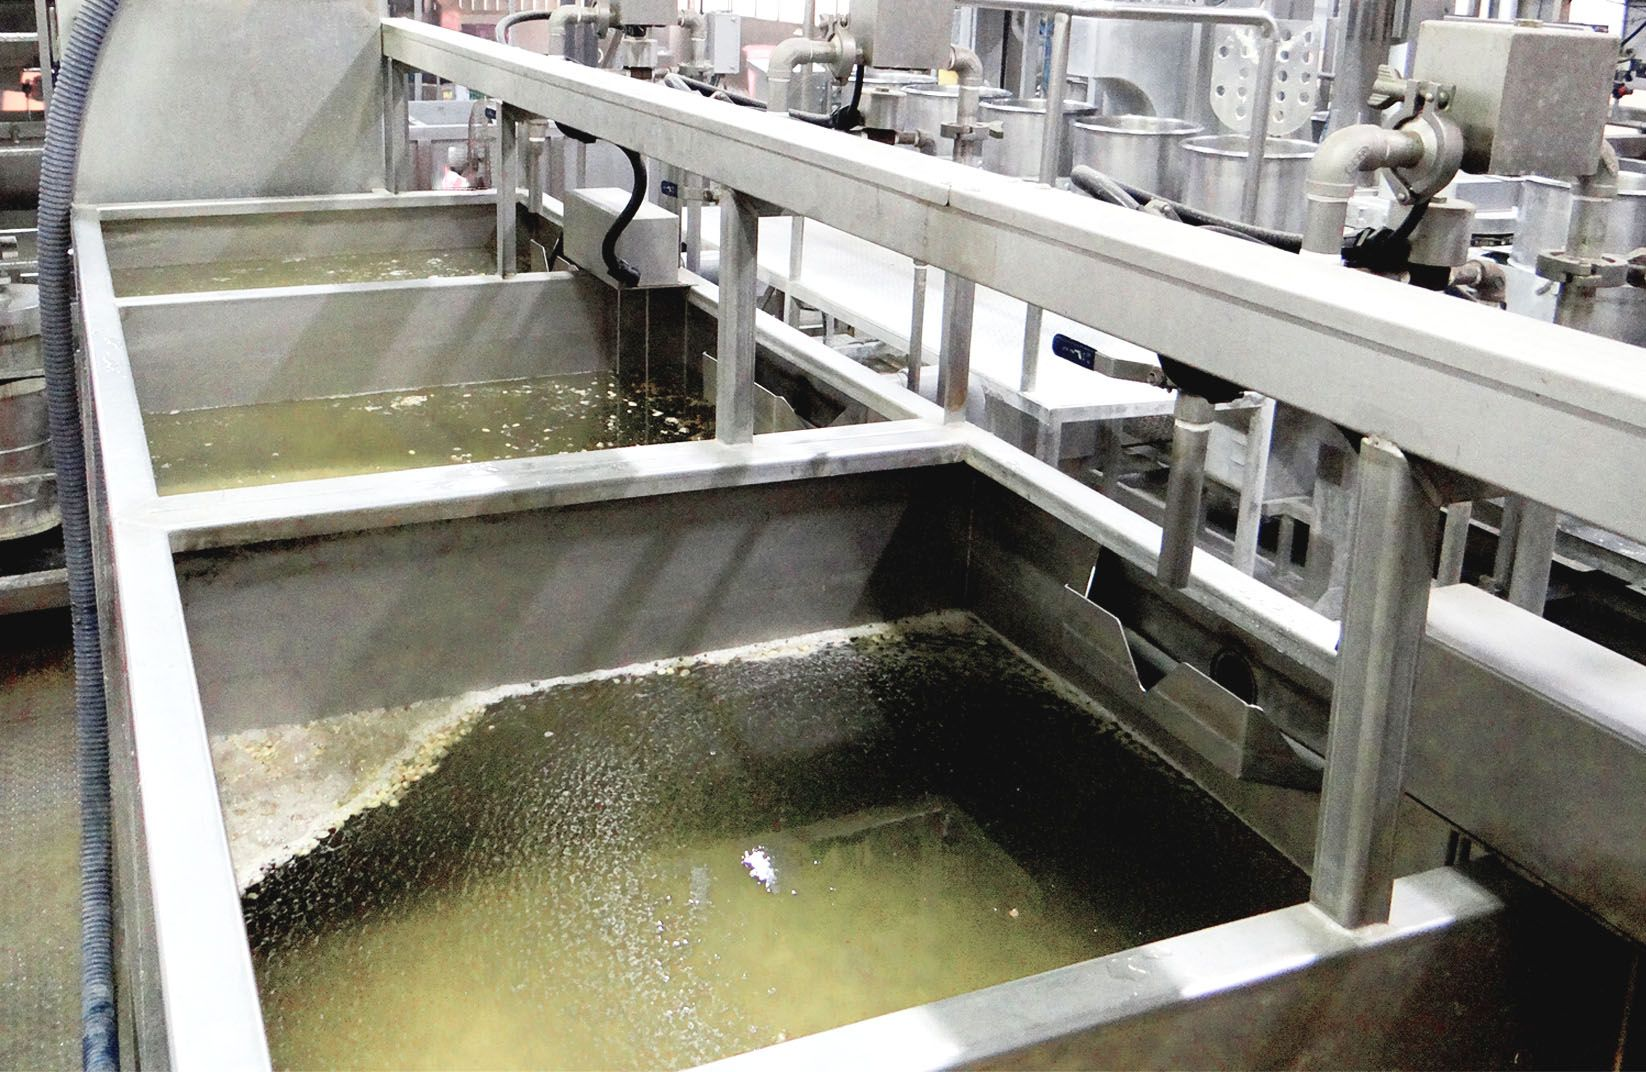 While the water put into soaking tank, some of bad soybeans and impurities will float on the water.